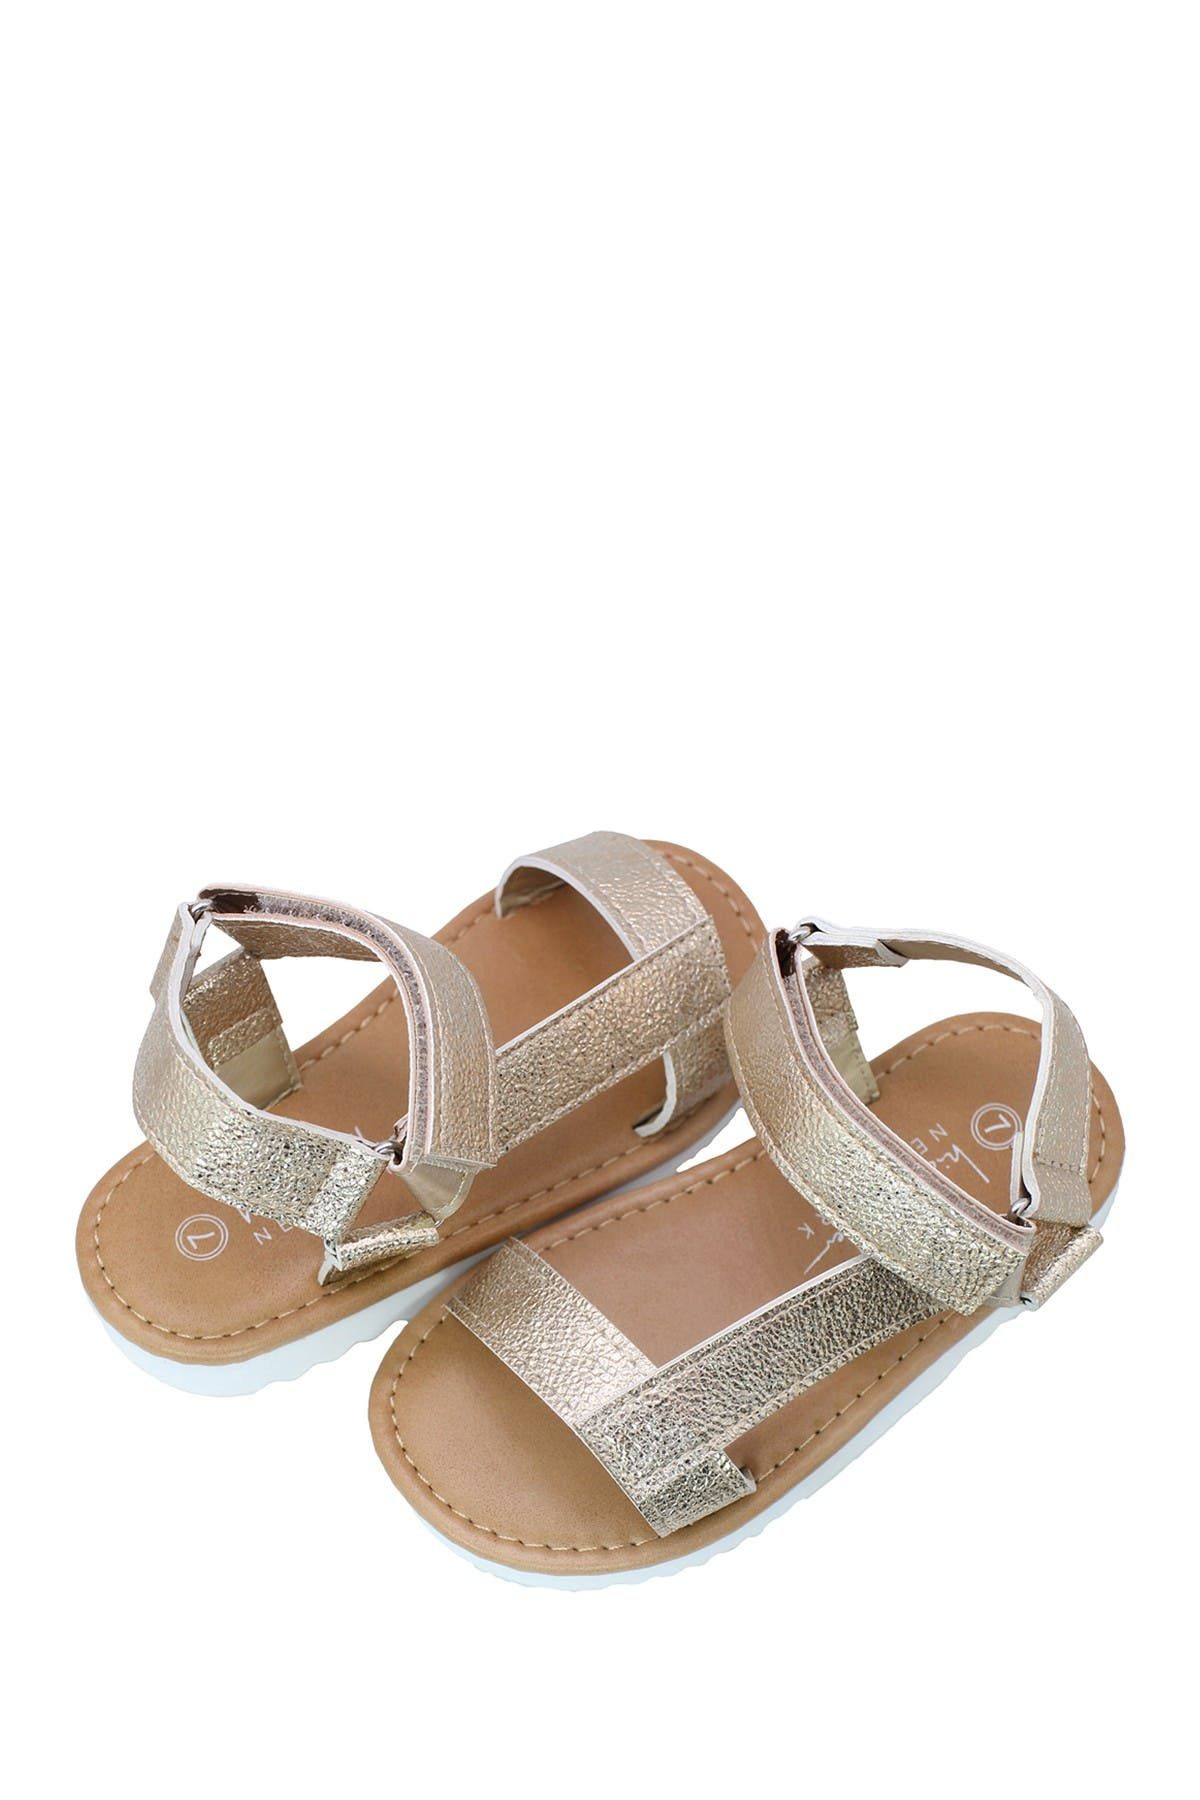 Image of Nicole Miller Strappy Sandal